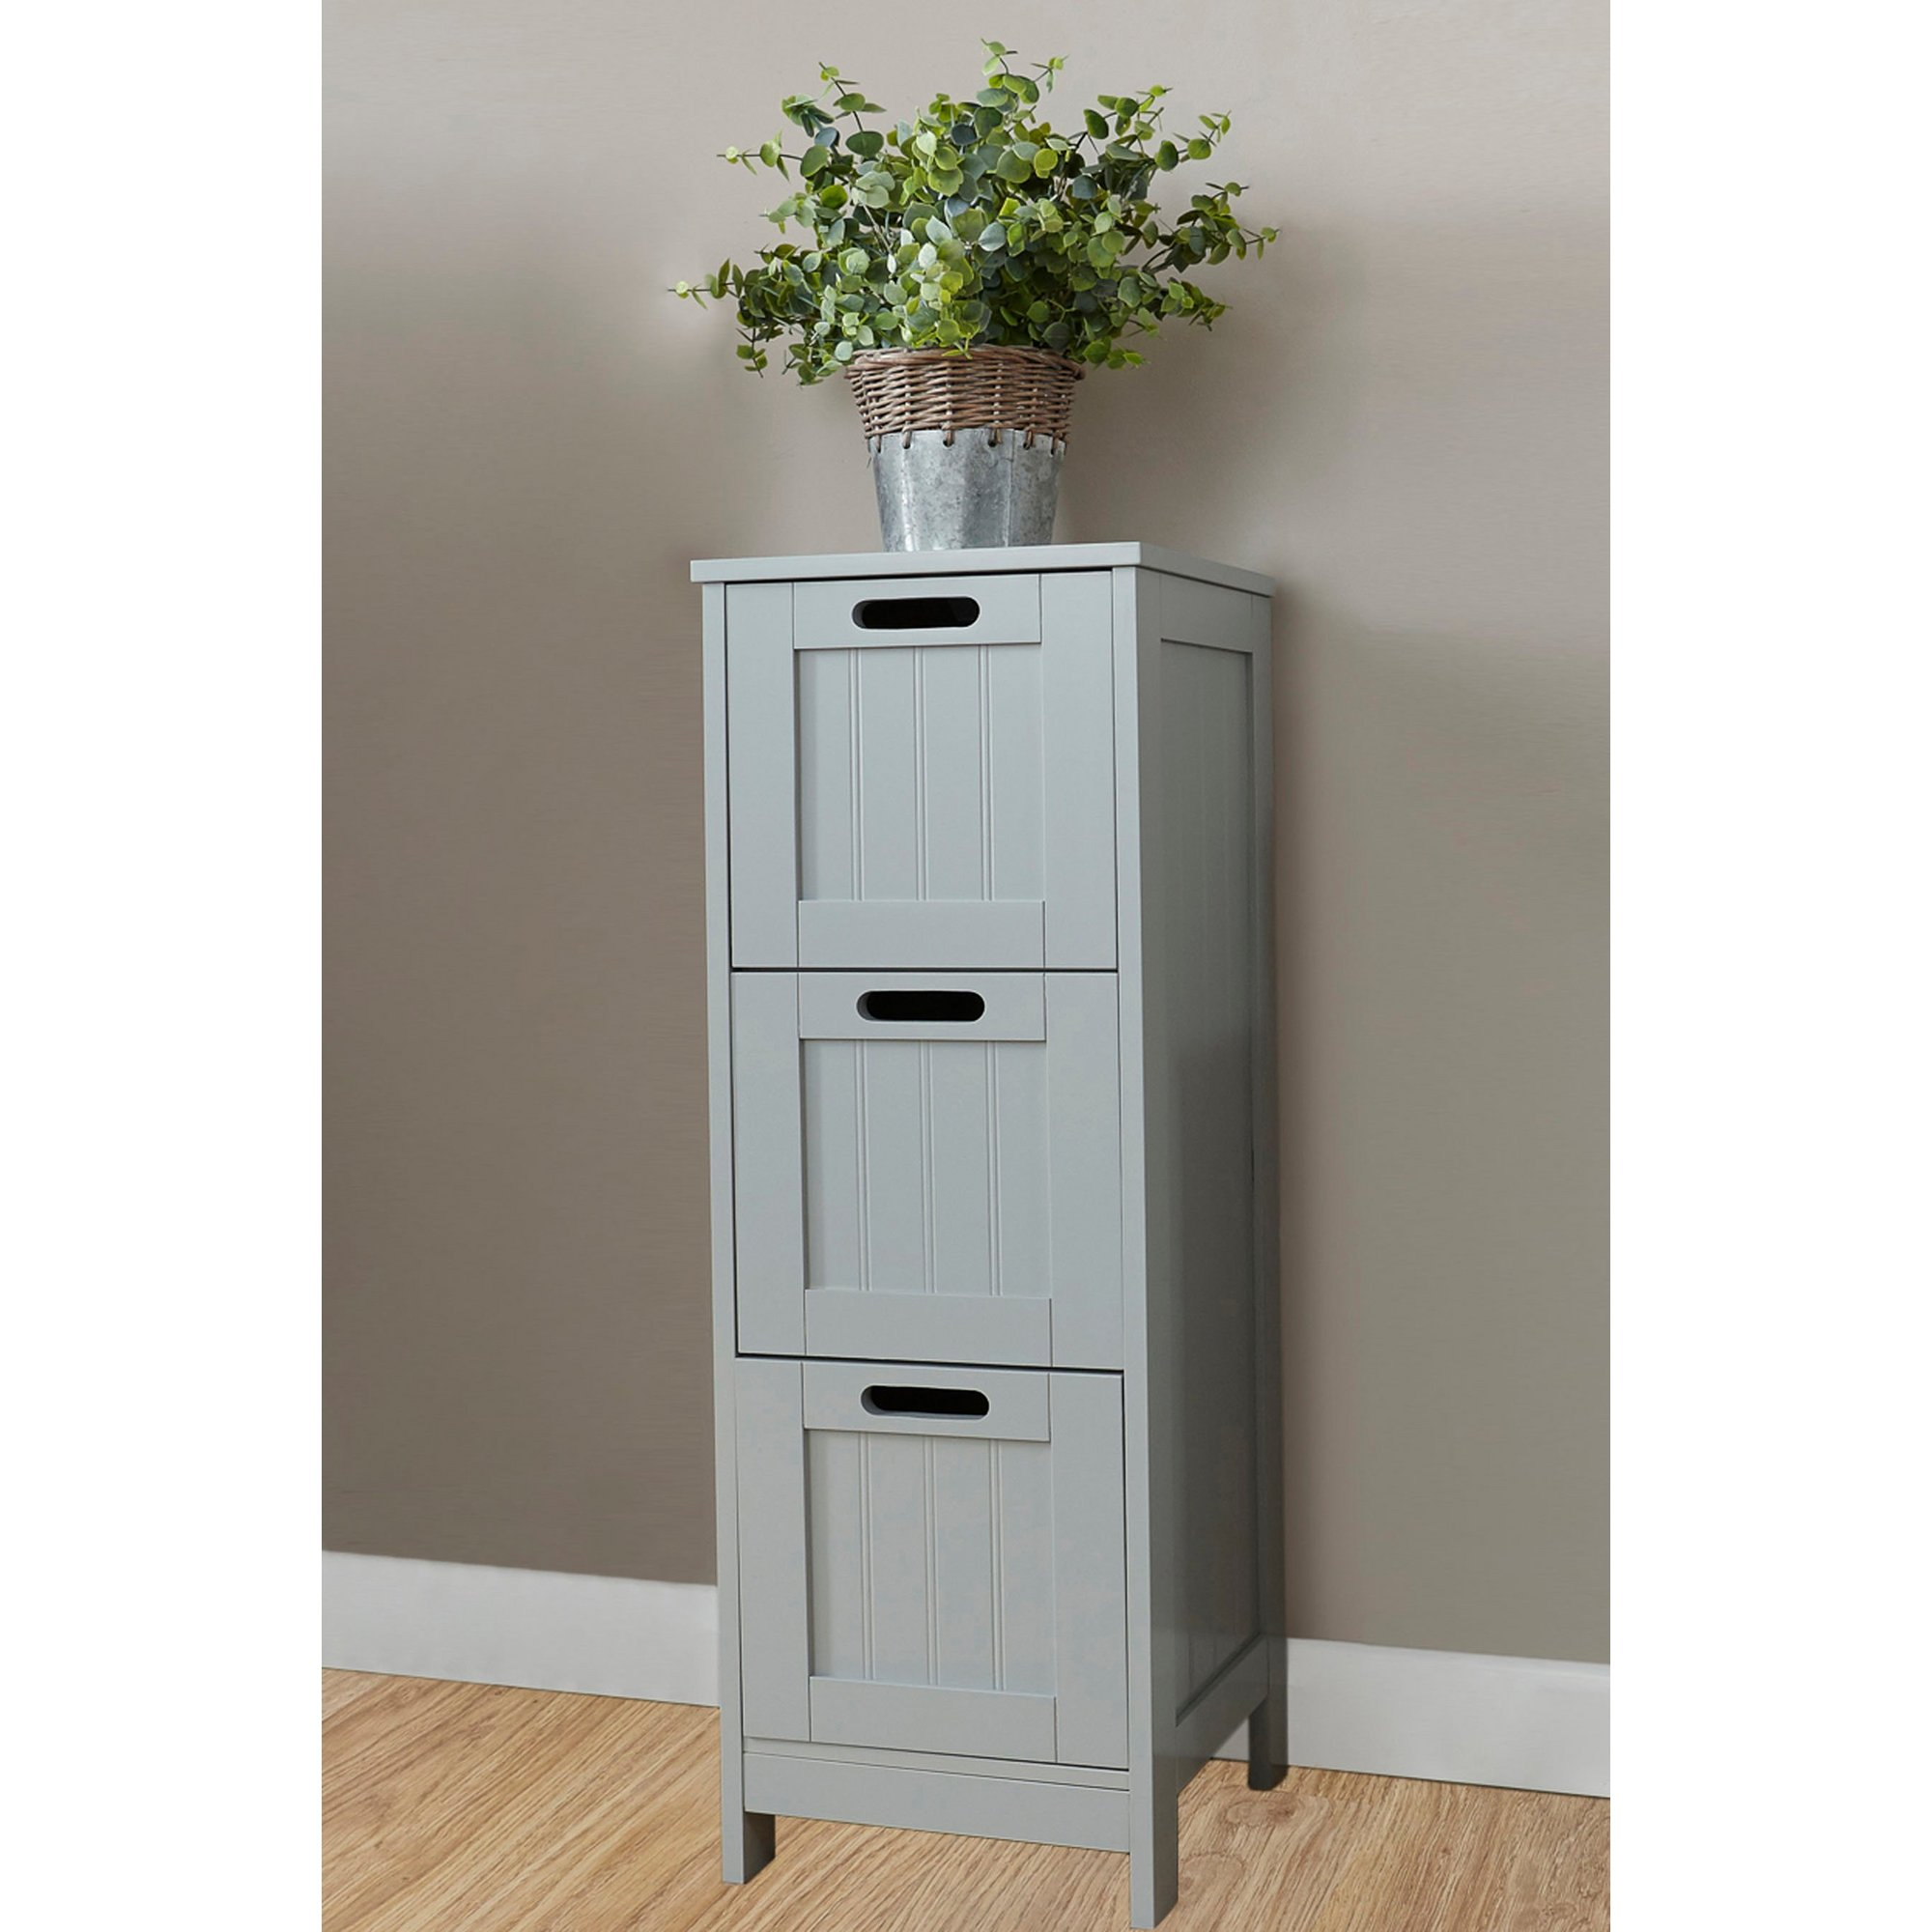 Image of Bathroom 3 Drawer Slim Chest